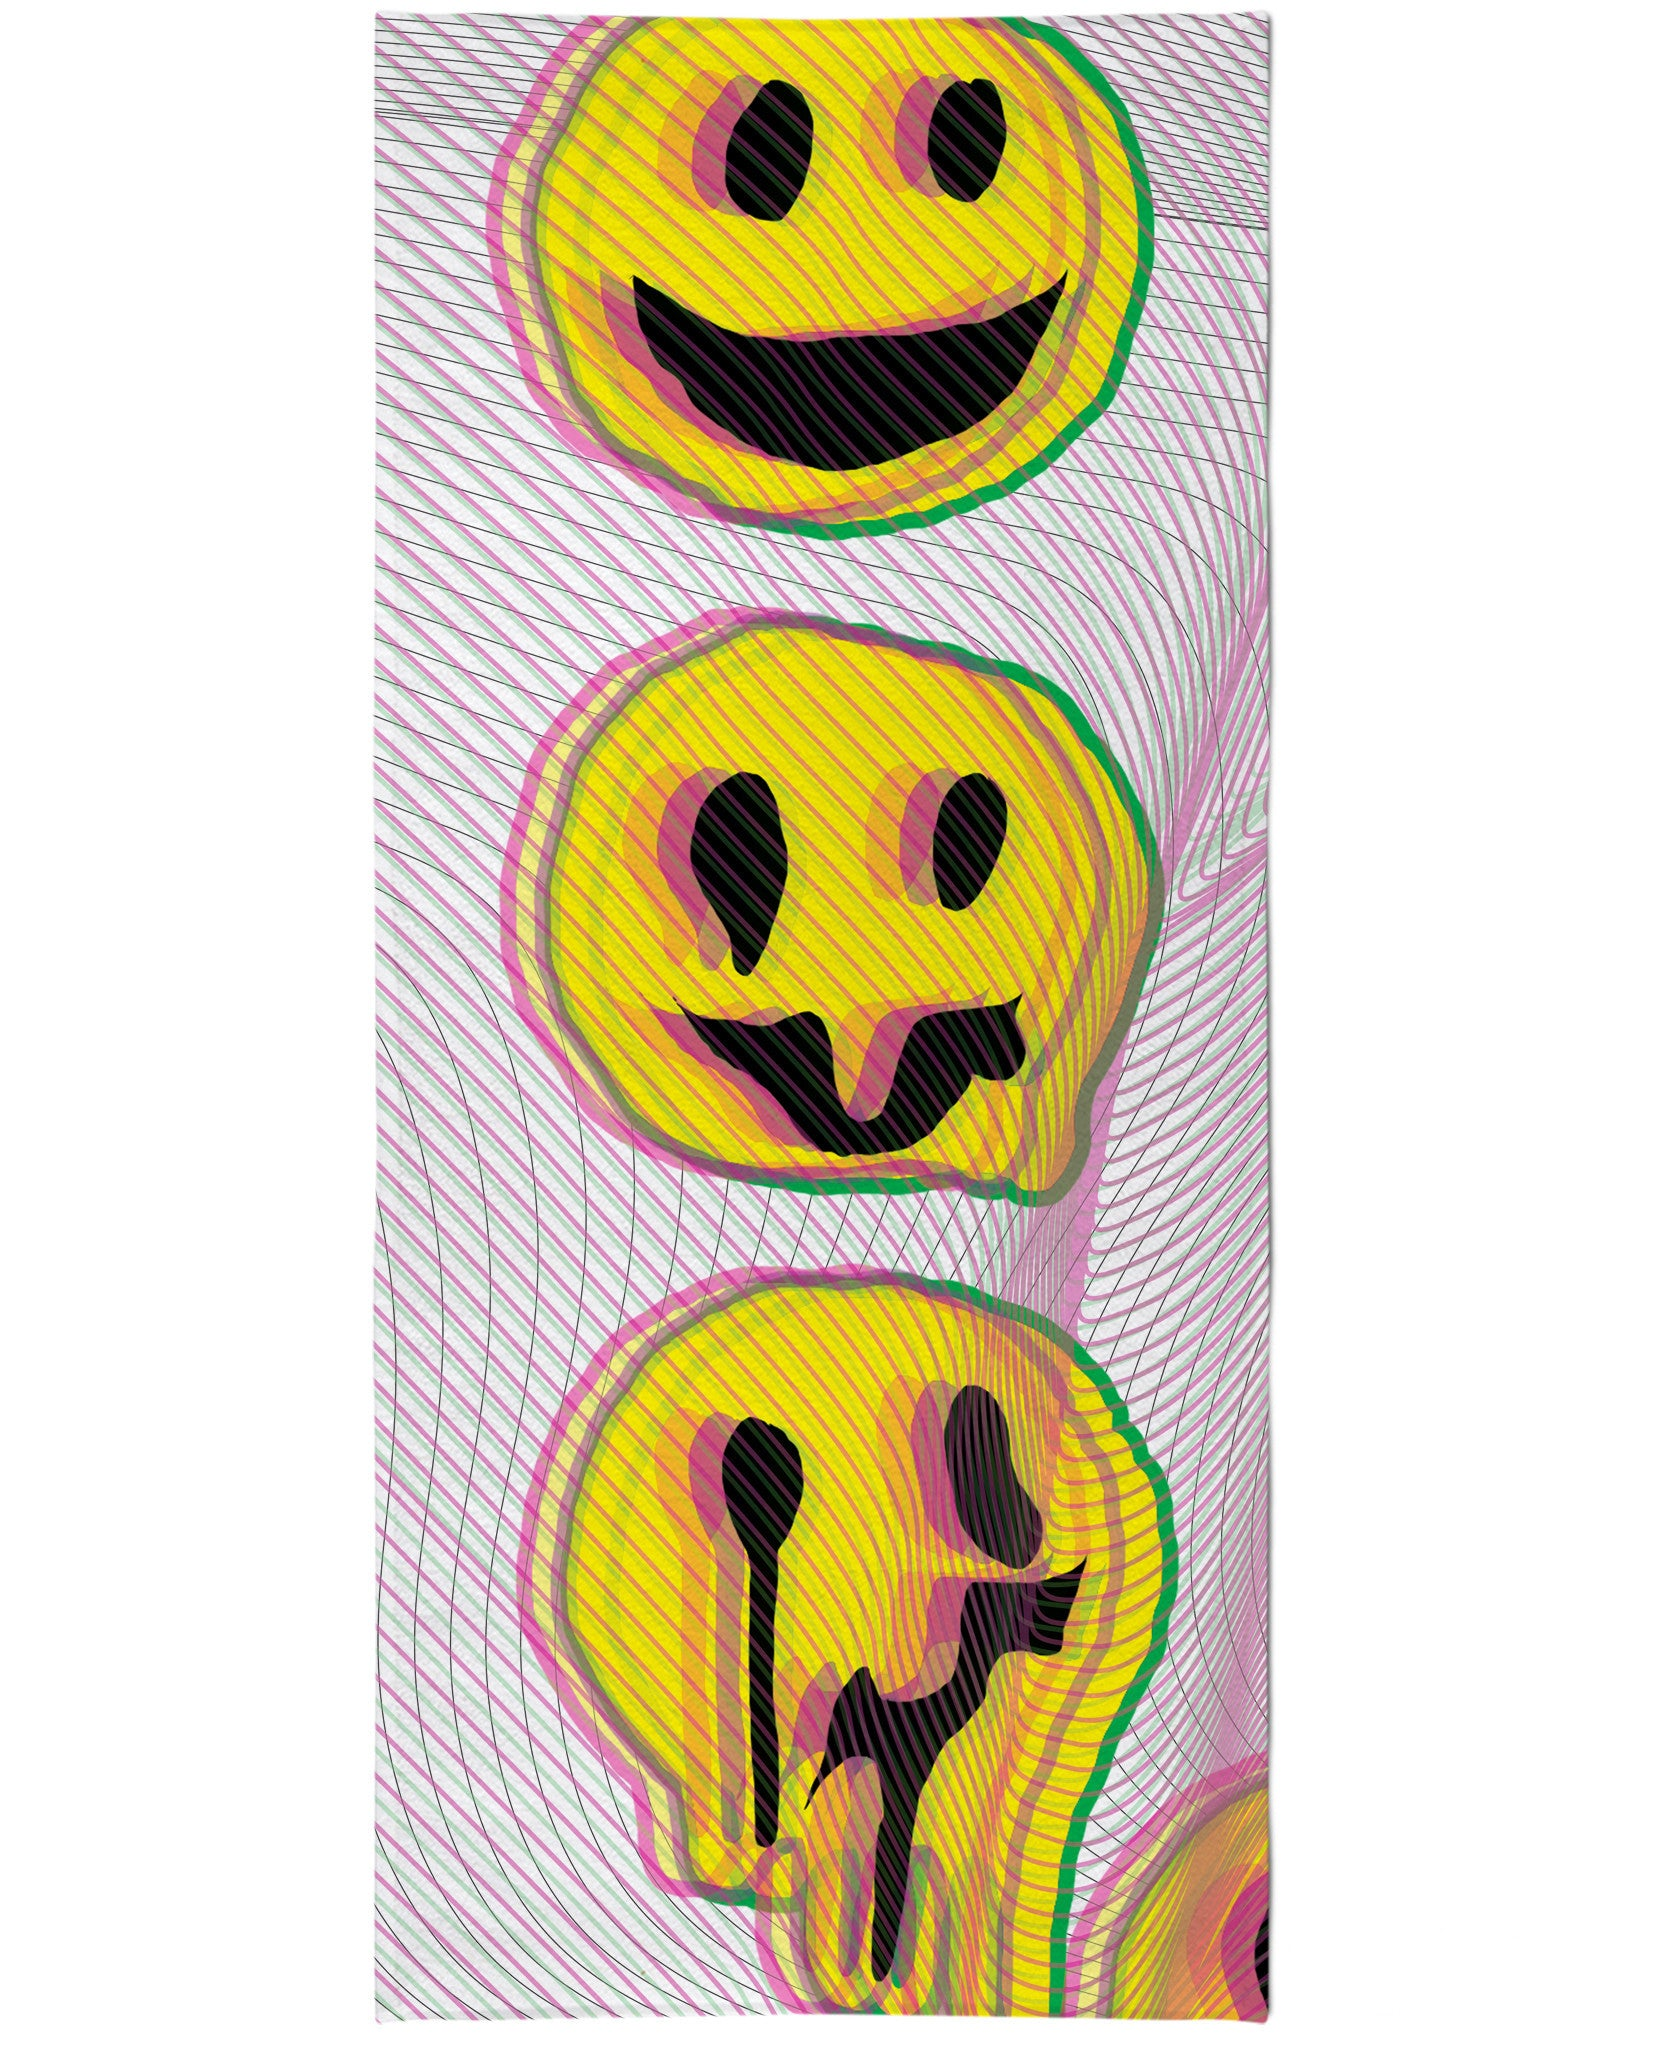 Wax Smile Beach Towel